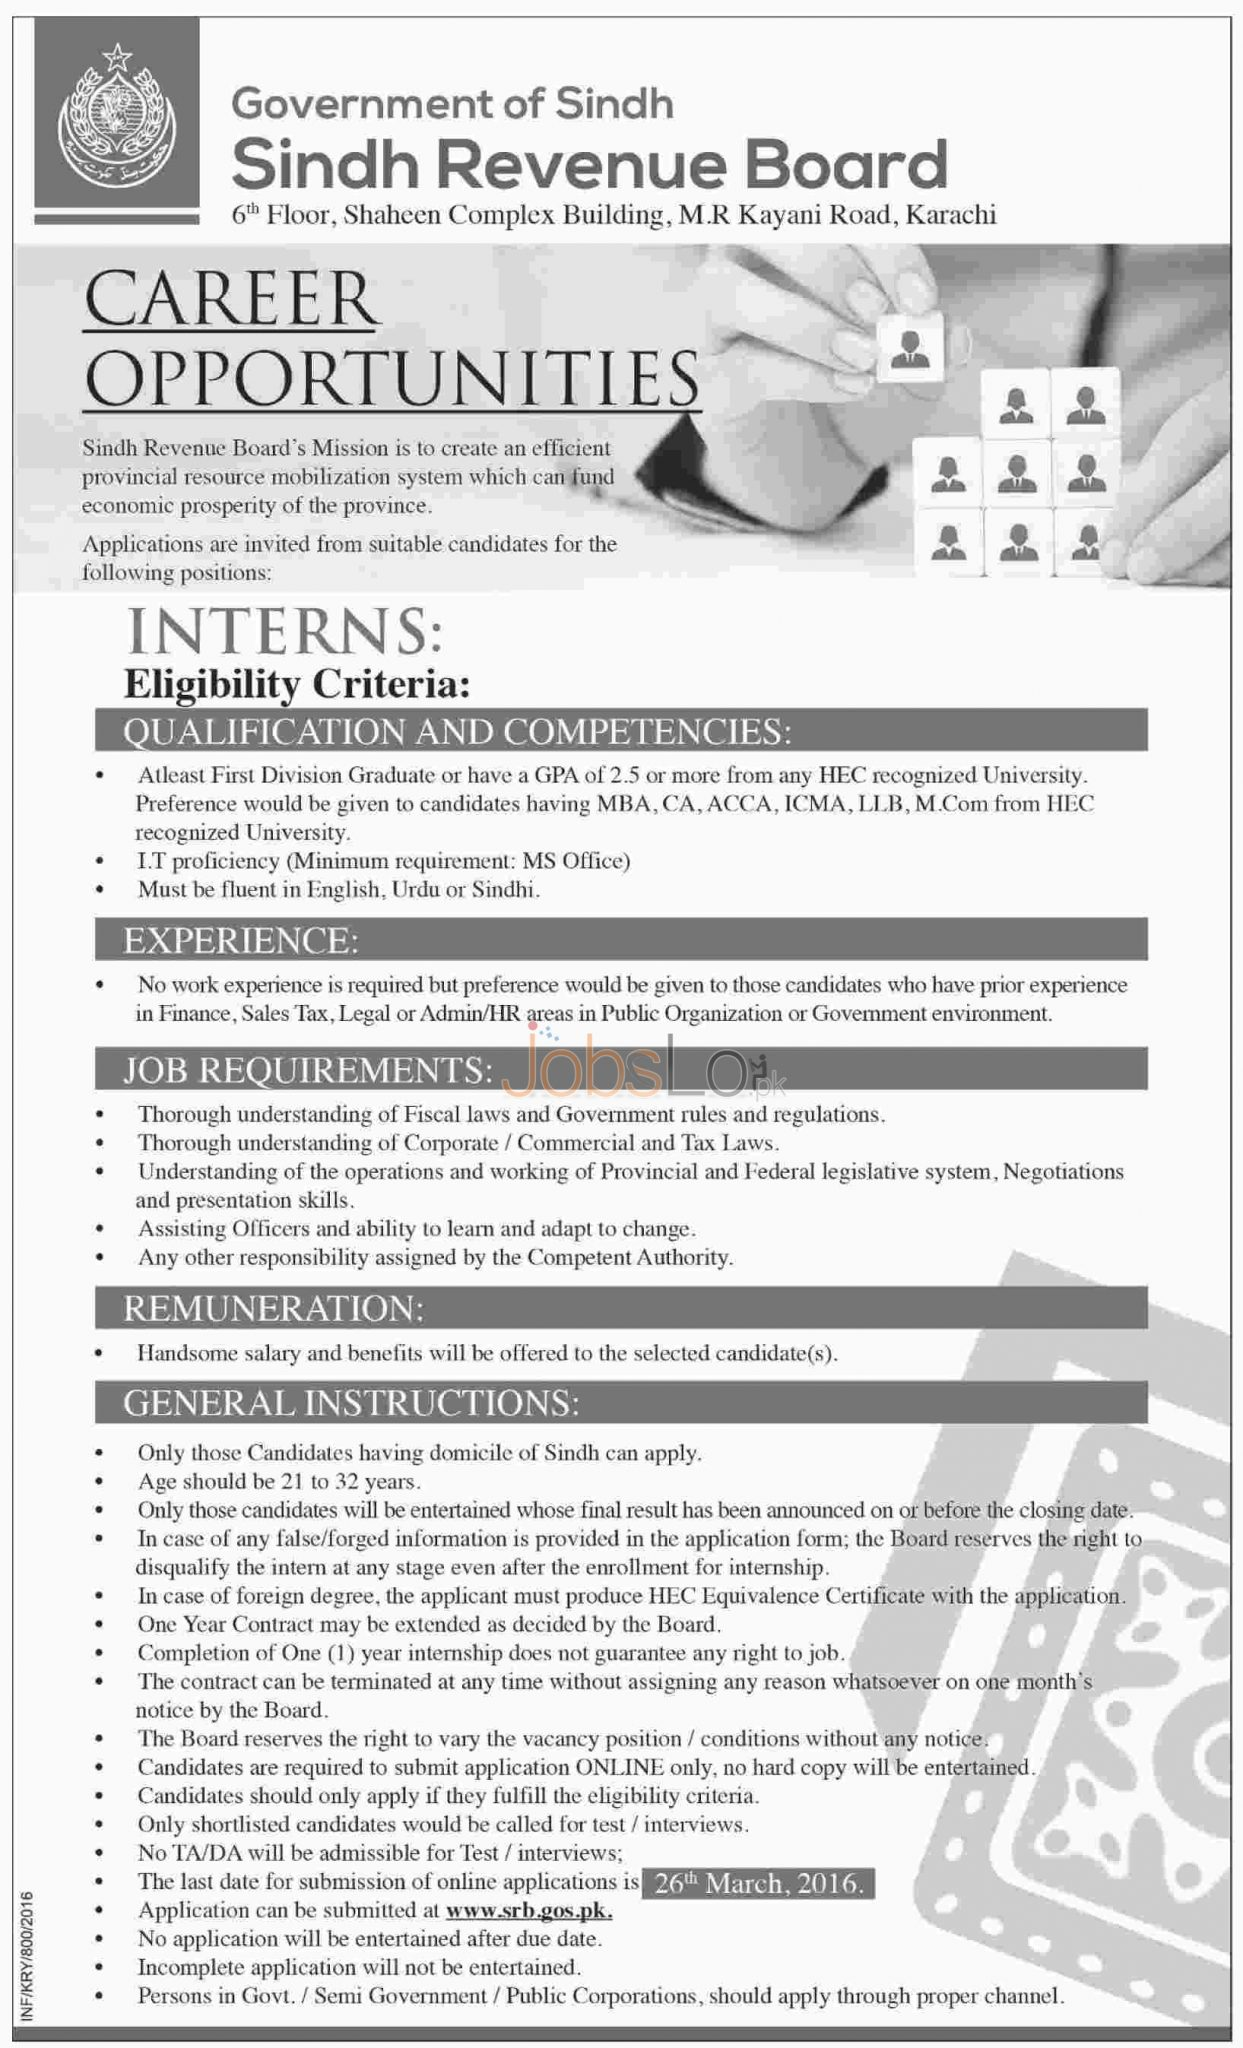 Recruitment Offers in Sindh Board Revenue 11 March 2016 in Karachi Govt of Sindh Latest